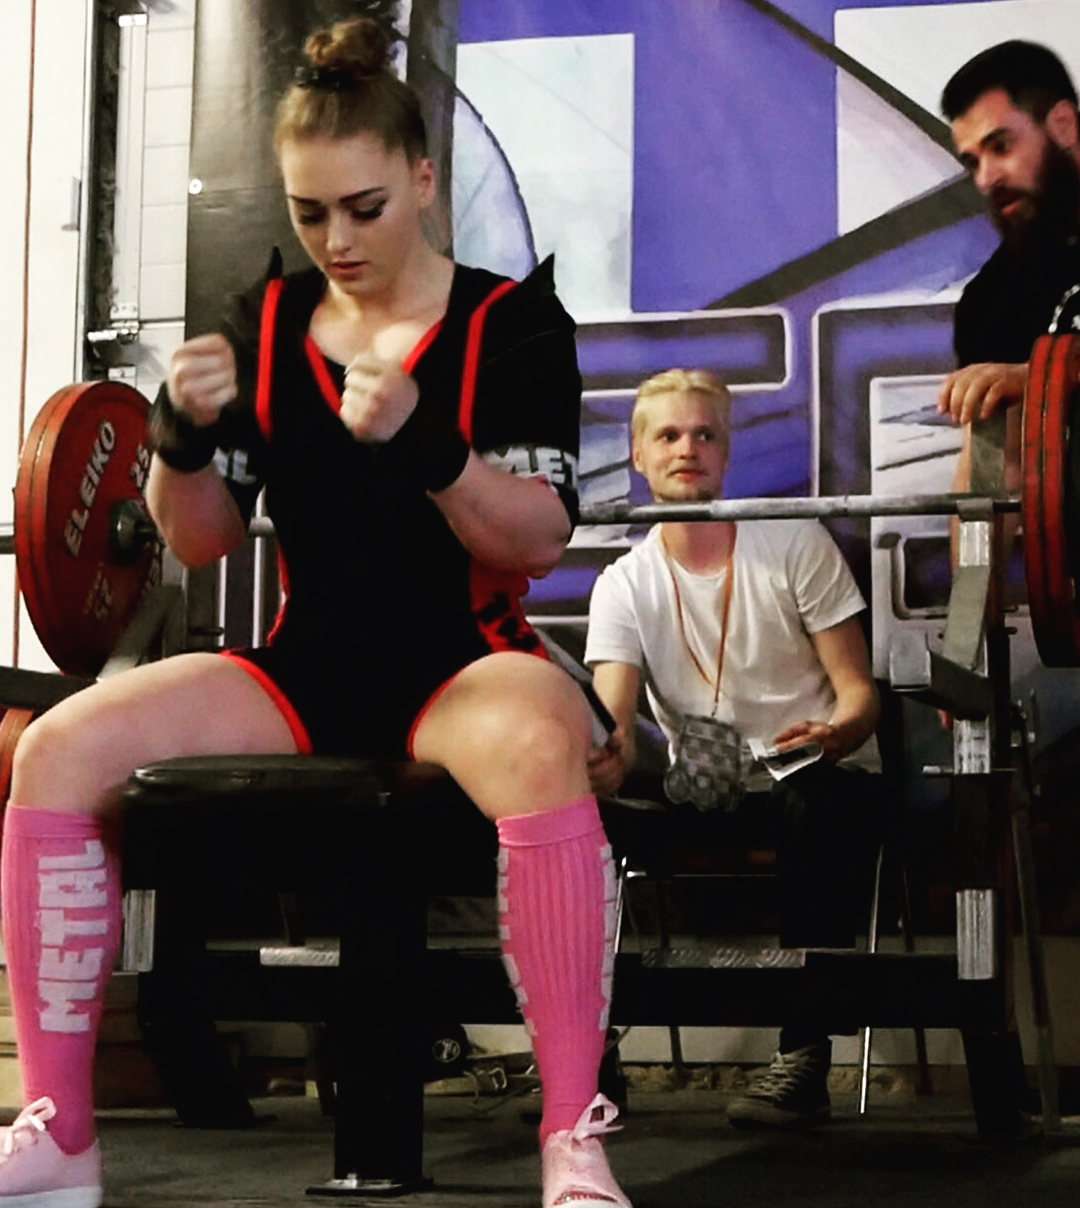 Meet Julia Vins, A Real Life Barbie With A Weight Lifter's Body